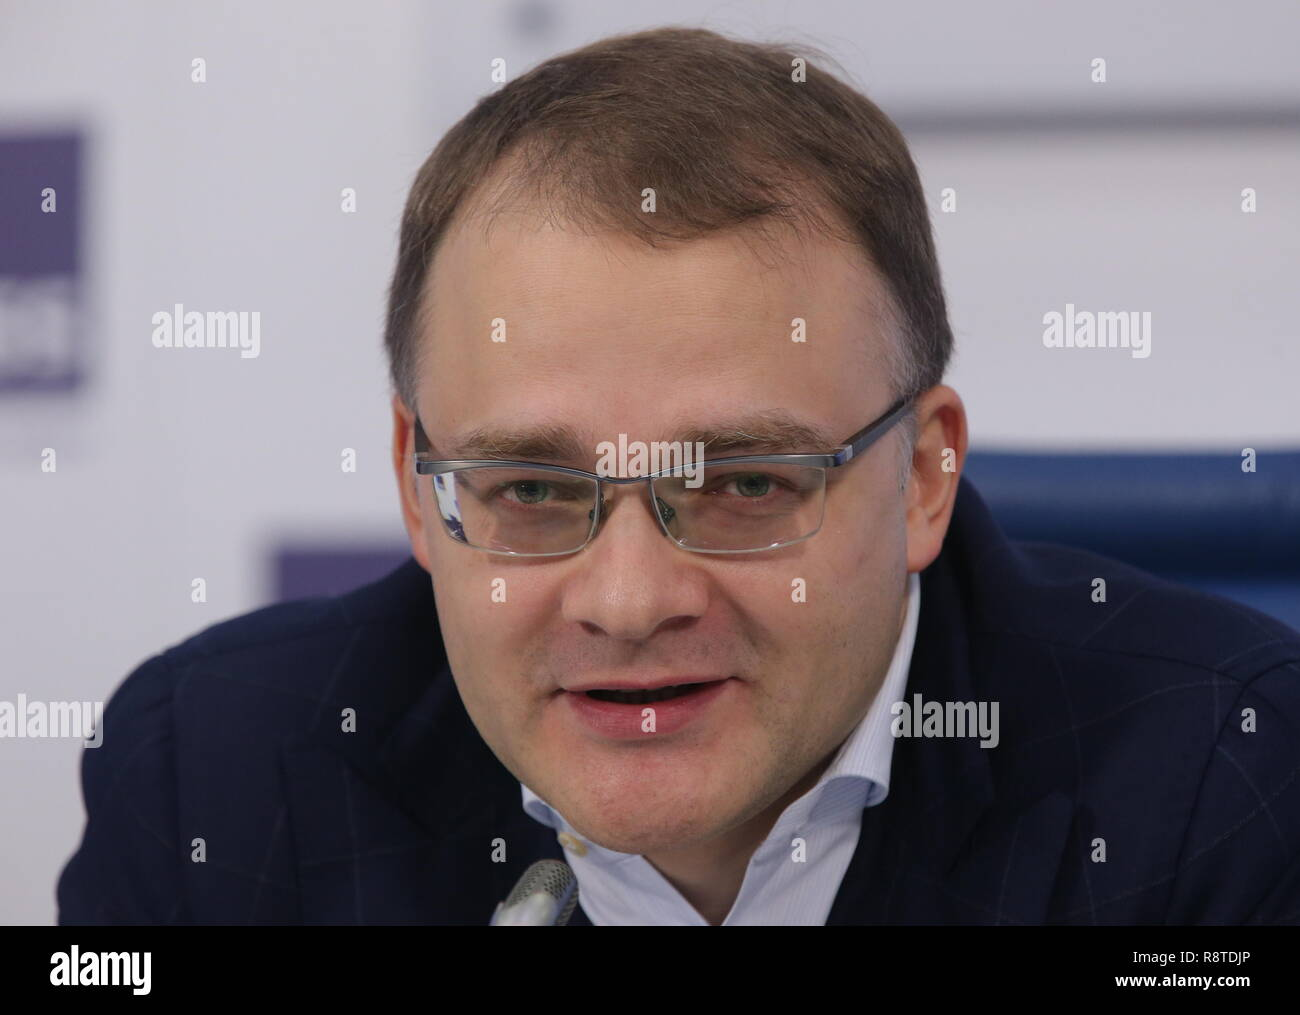 Moscow, Russia. 17th Dec, 2018. MOSCOW, RUSSIA - DECEMBER 17, 2018: The President of the Lider Invest real estate development company, Oleg Mamayev, at a press conference by Urban Awards organisers at the Moscow office of the TASS news agency to discuss the trends in Moscow's real estate development market in 2018. Vladimir Gerdo/TASS Credit: ITAR-TASS News Agency/Alamy Live News - Stock Image